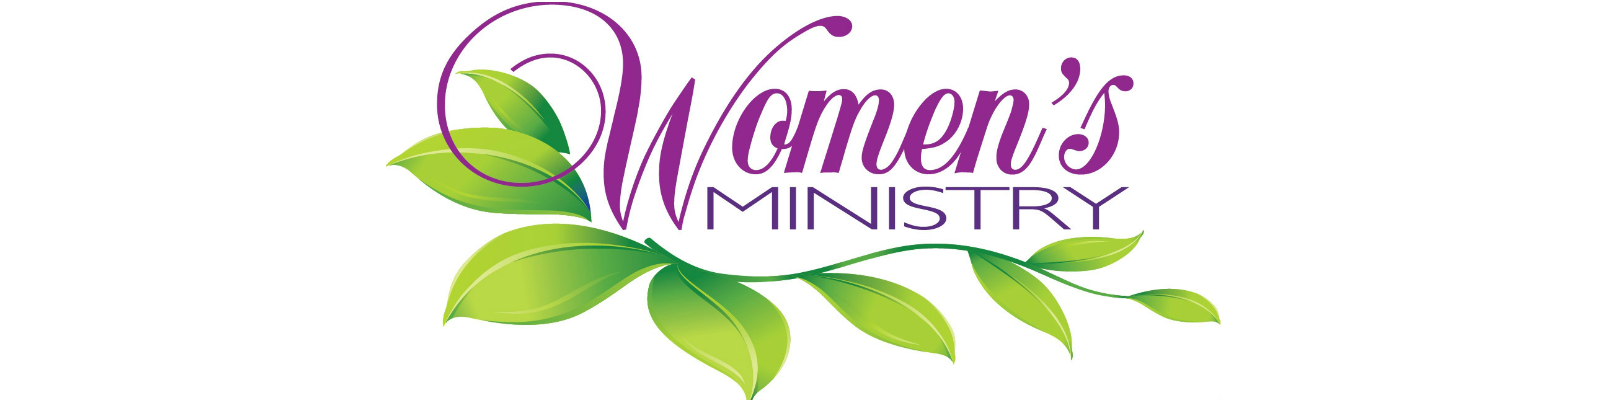 Women s ministries clipart clipart library library Richfield Life Ministries Church - Women\'s Ministries clipart library library